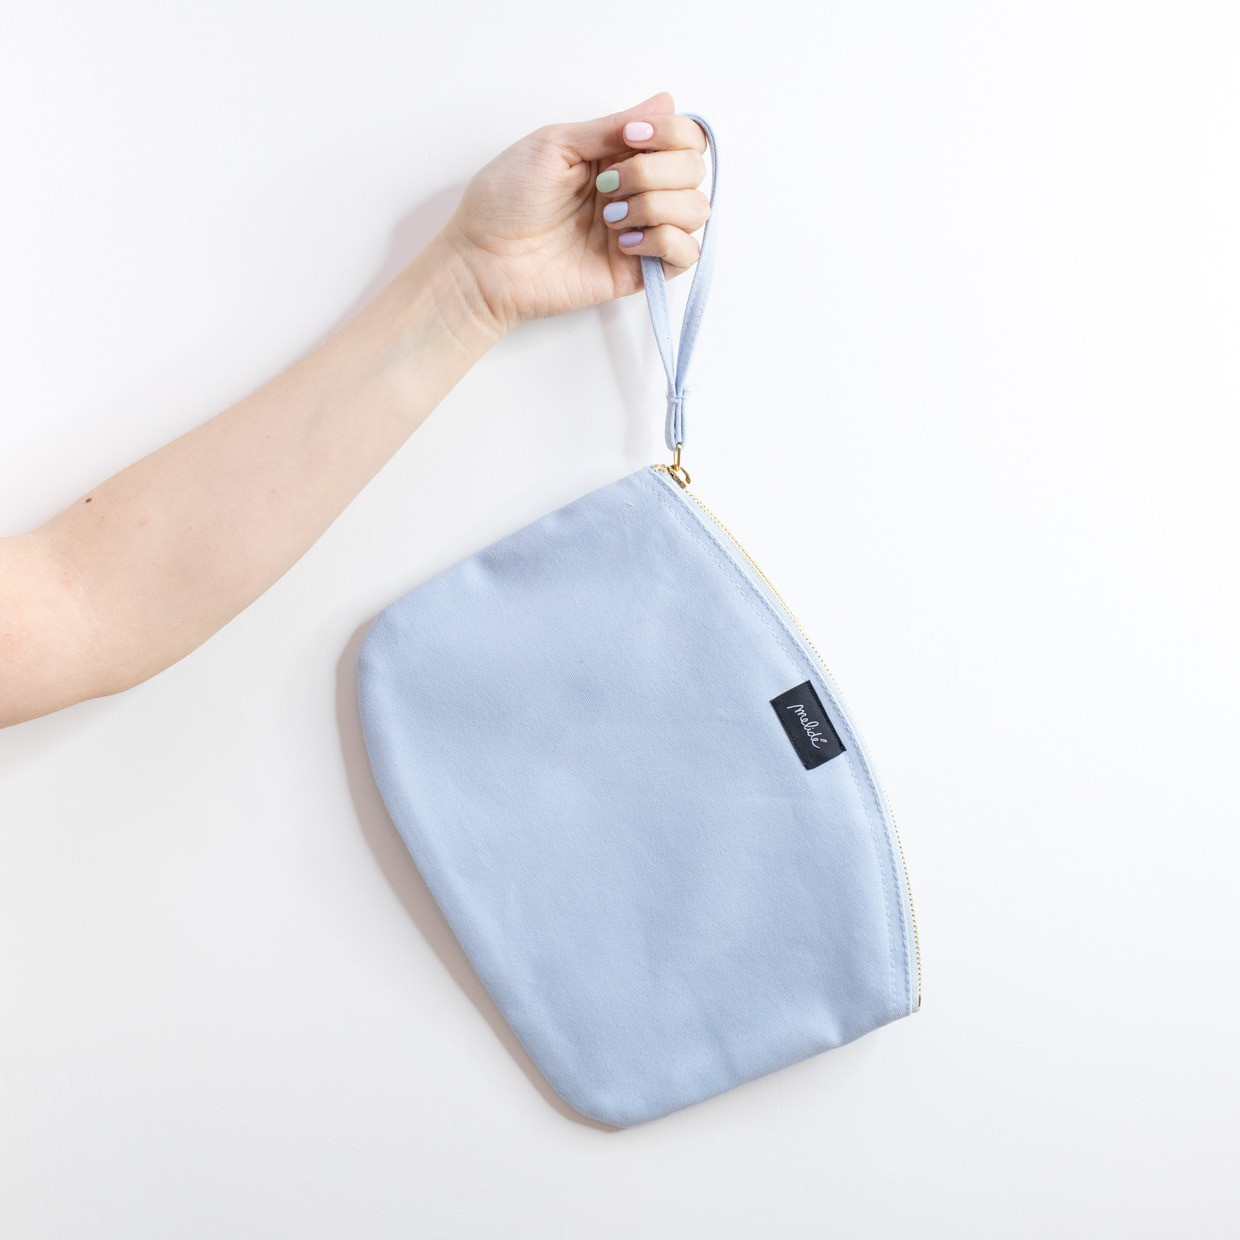 The ZIPPED POUCH L